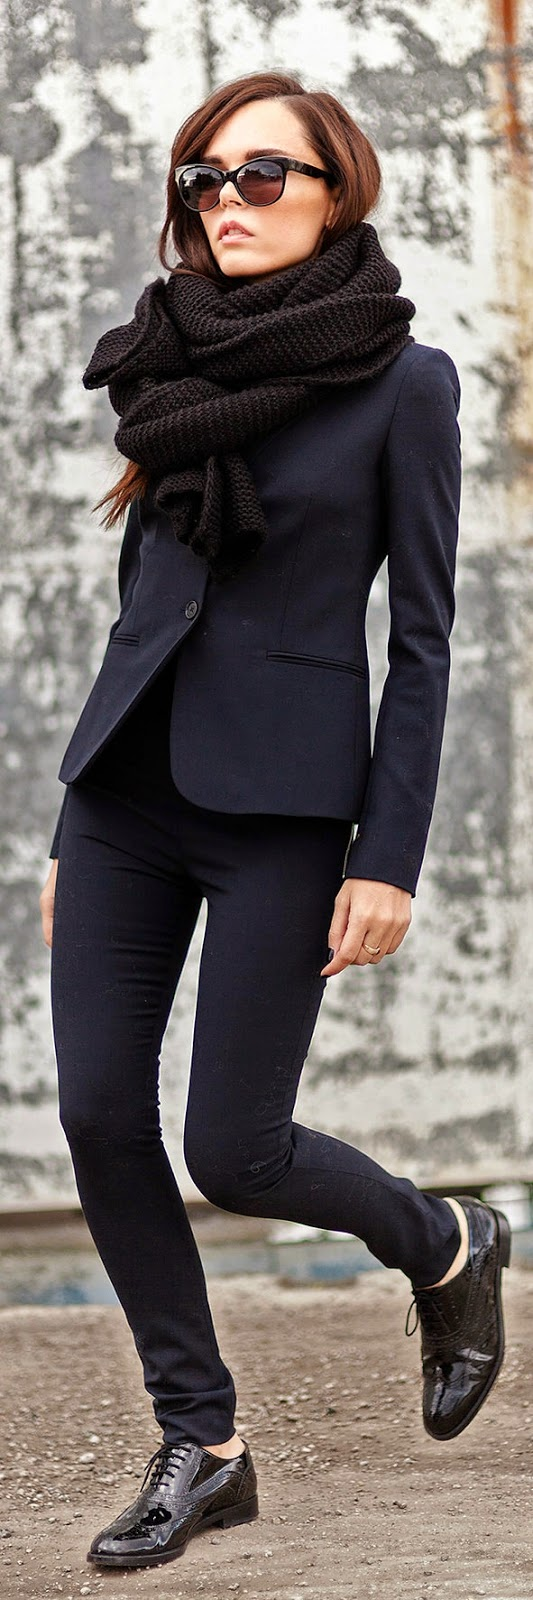 Classic Navy Look with Oversized Black Chunky Knitted Scarve # Work Outfits | Chic Street Styles